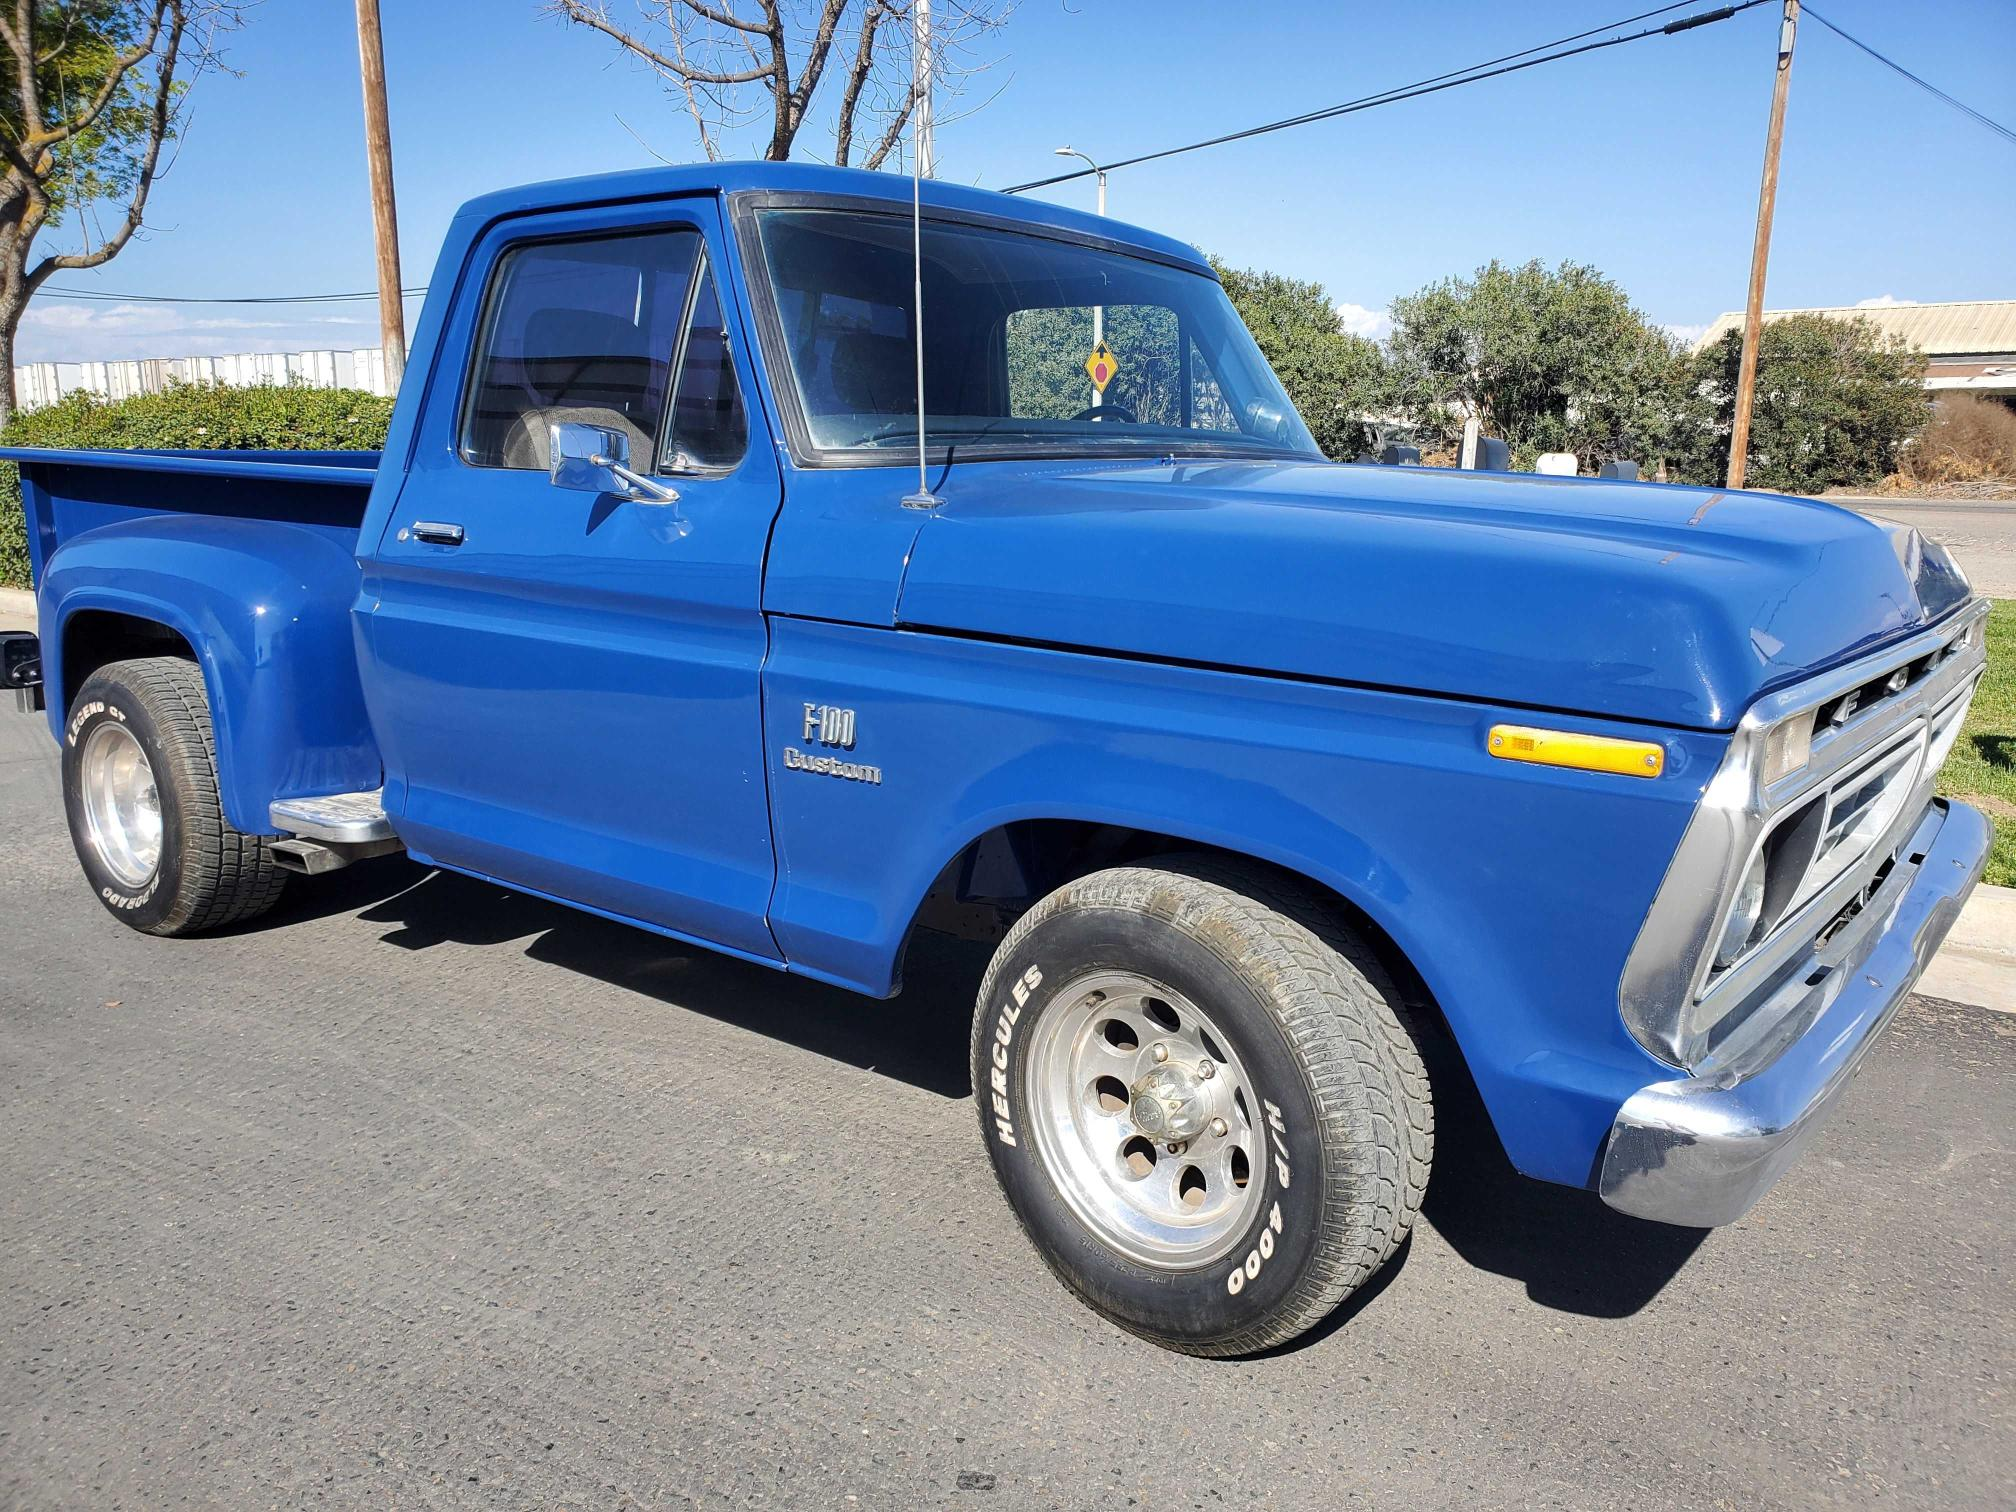 Ford Vehiculos salvage en venta: 1976 Ford F100 Custm